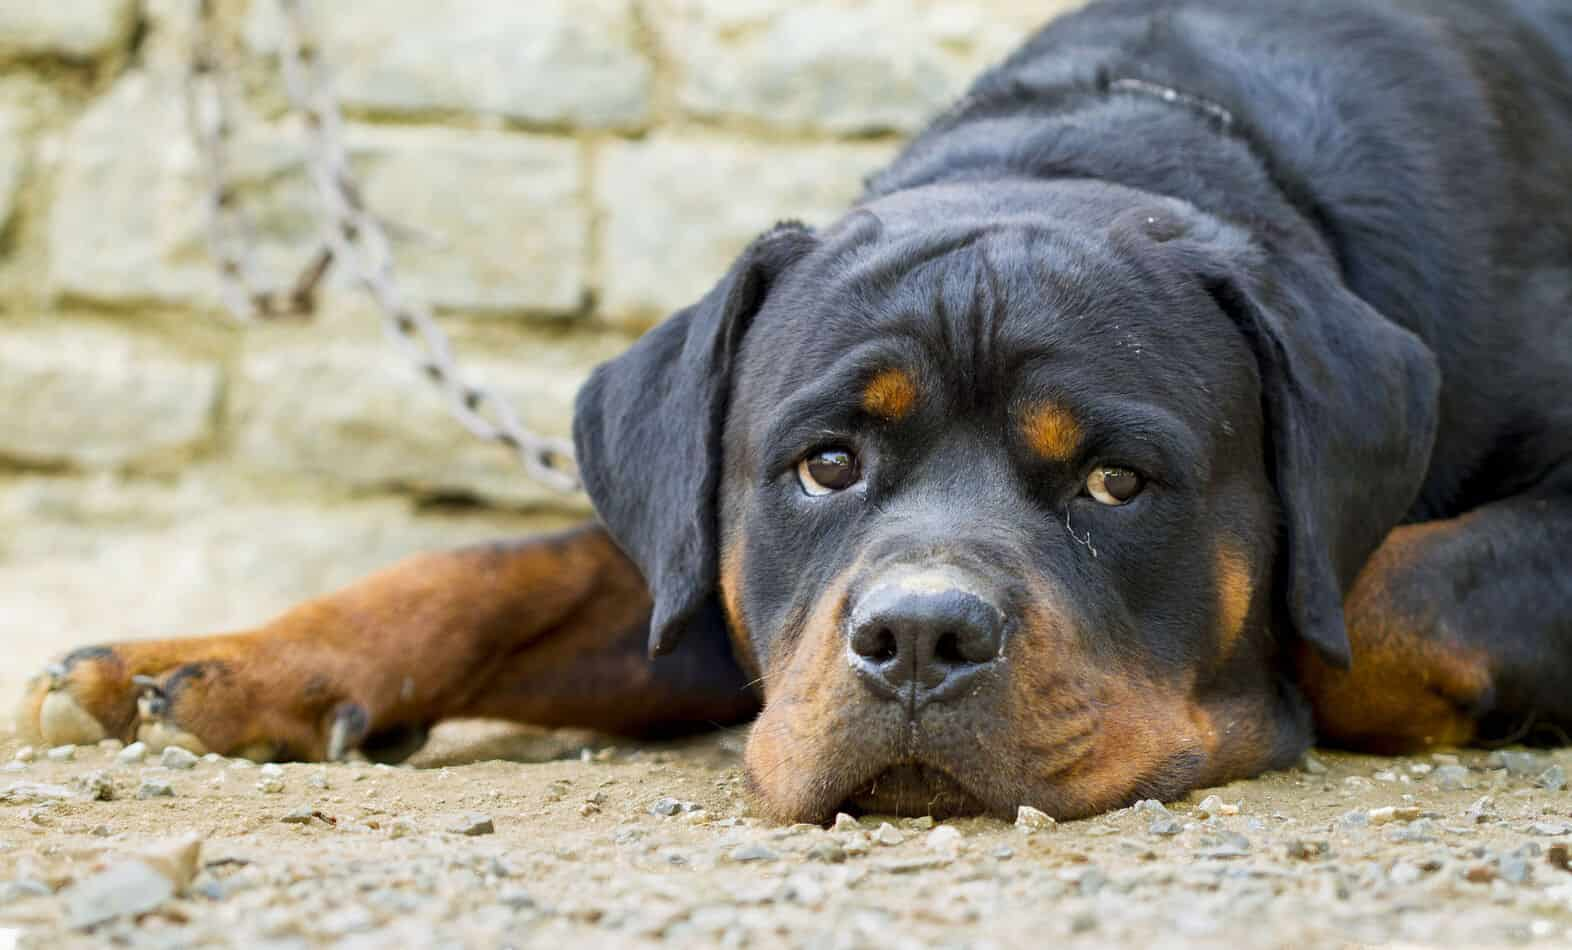 What Are Rottweilers Bred For?